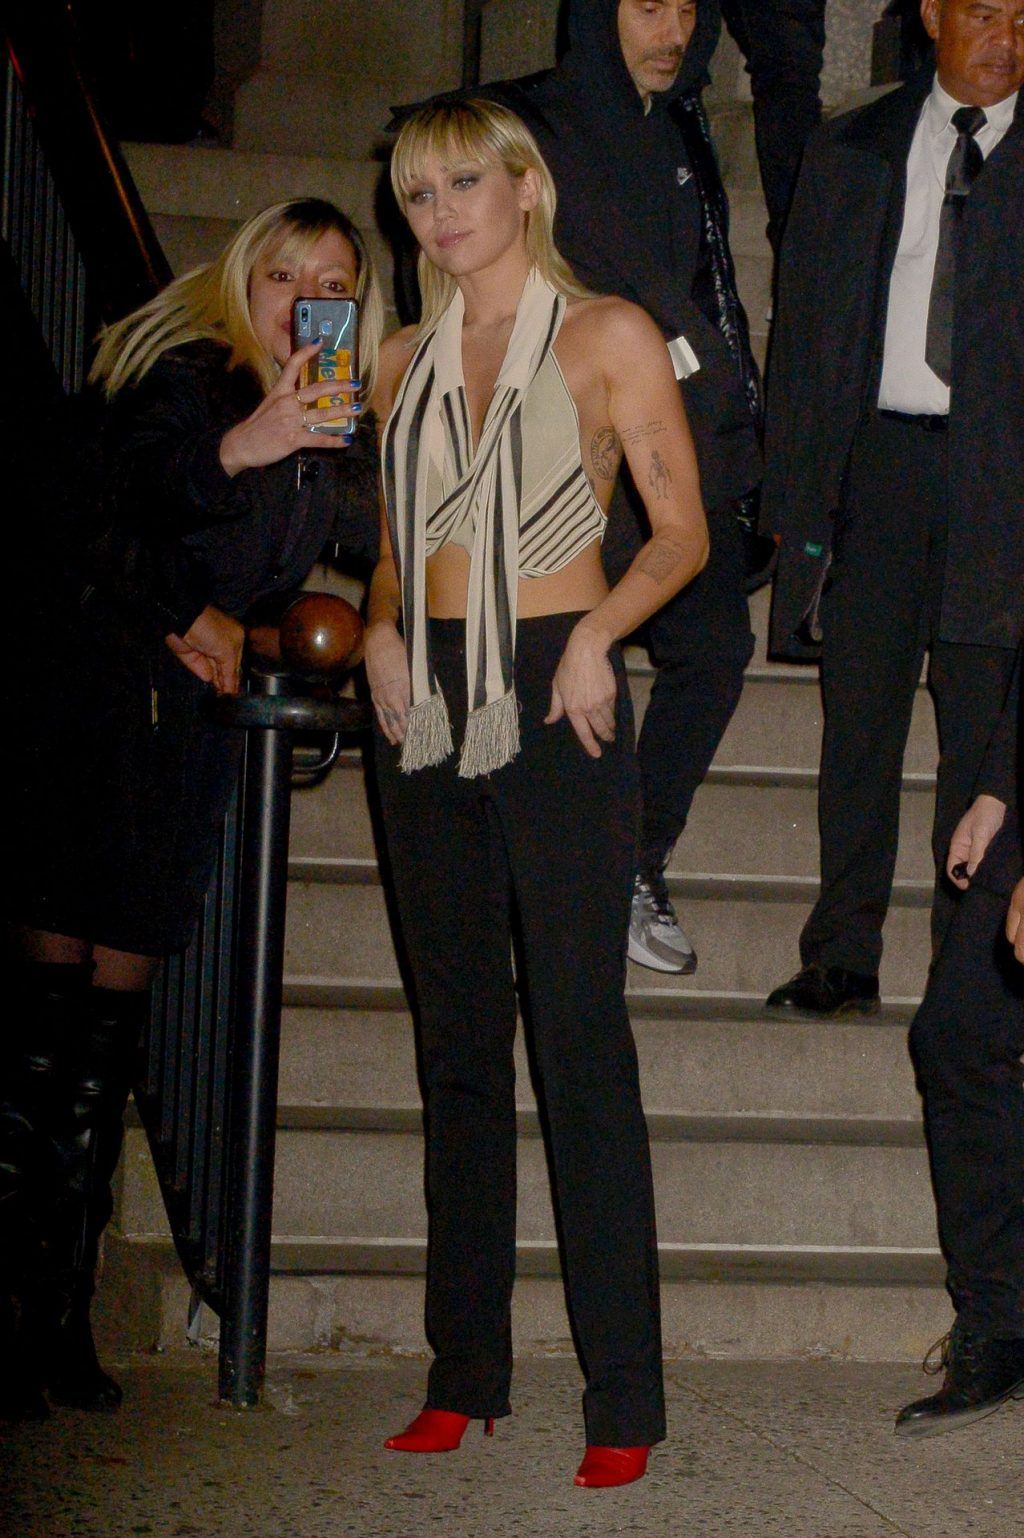 Miley Cyrus is Very Revealing After Marc Jacobs Fashion Show in NYC (204 New Photos)